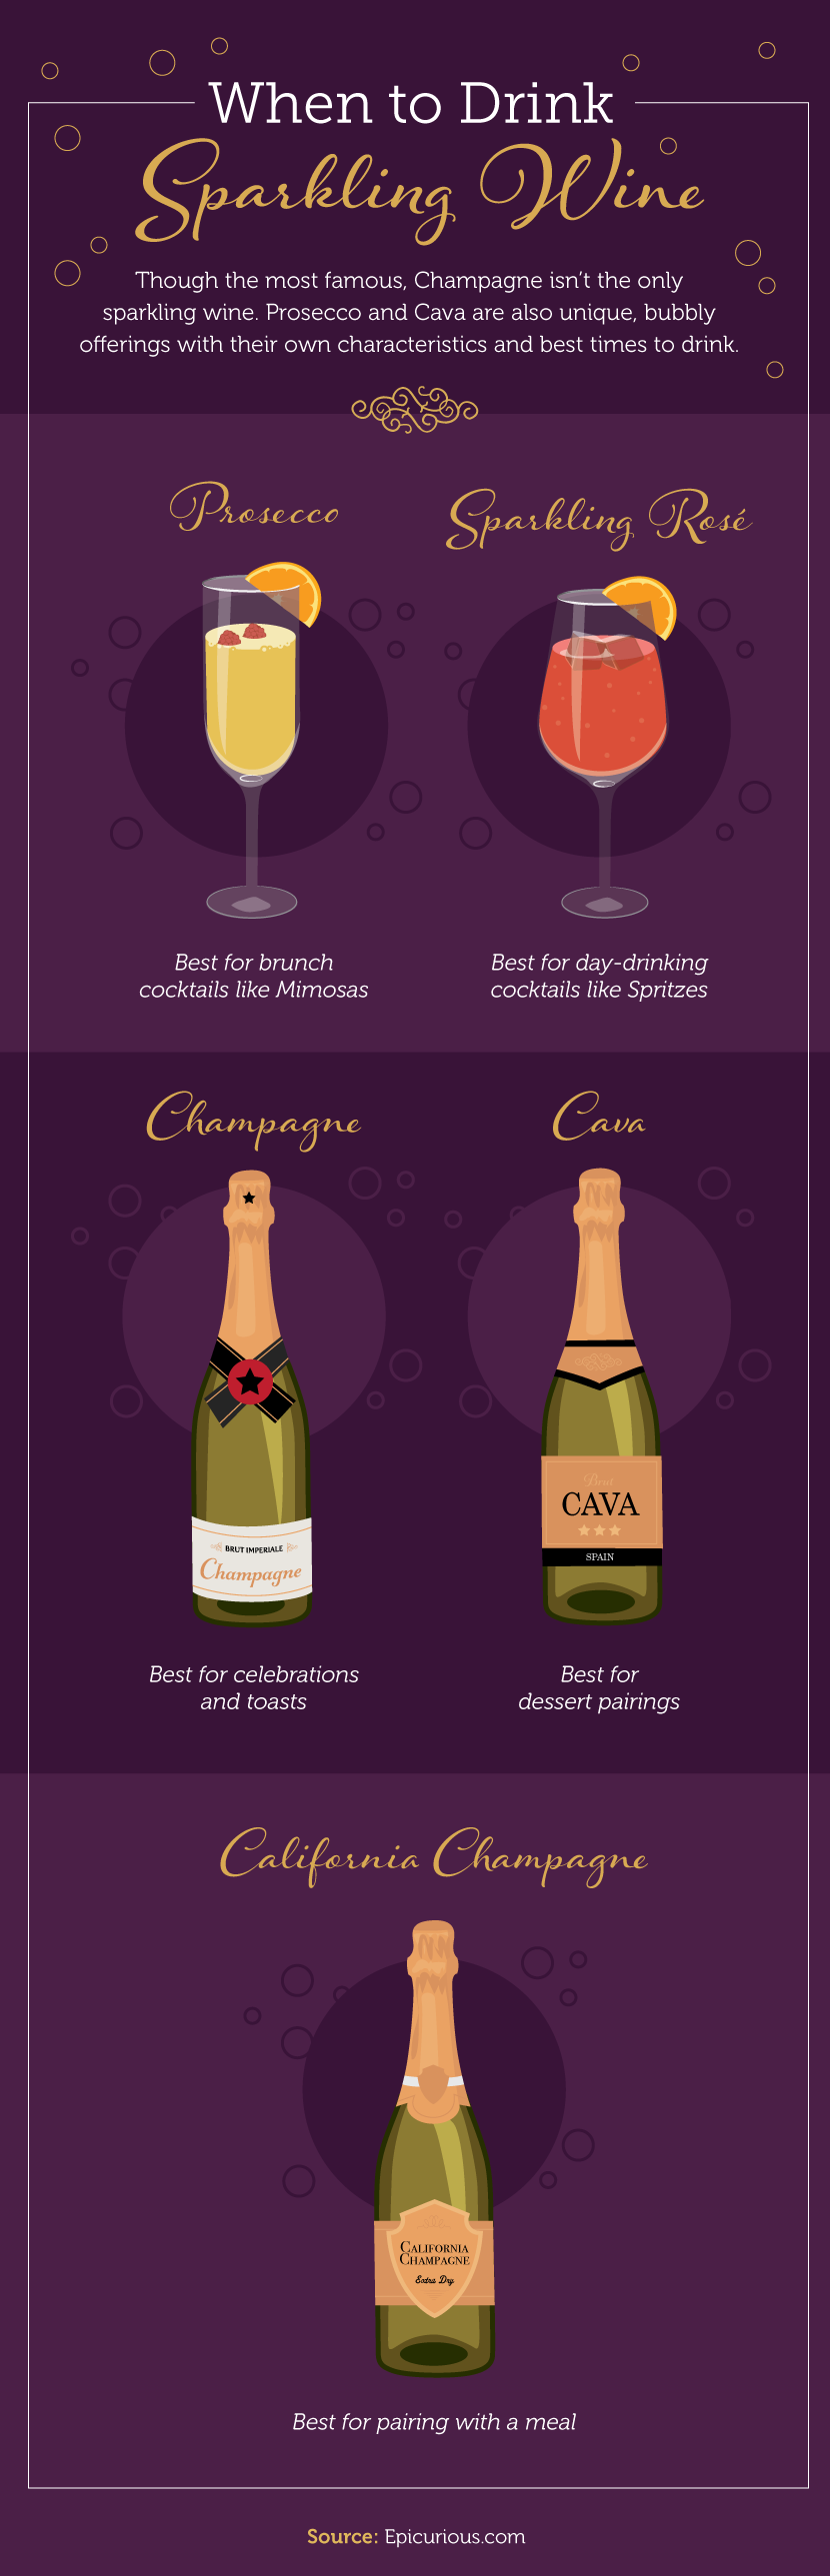 When to Drink Sparkling Wine - Everything You Need To Know About Drinking Champagne